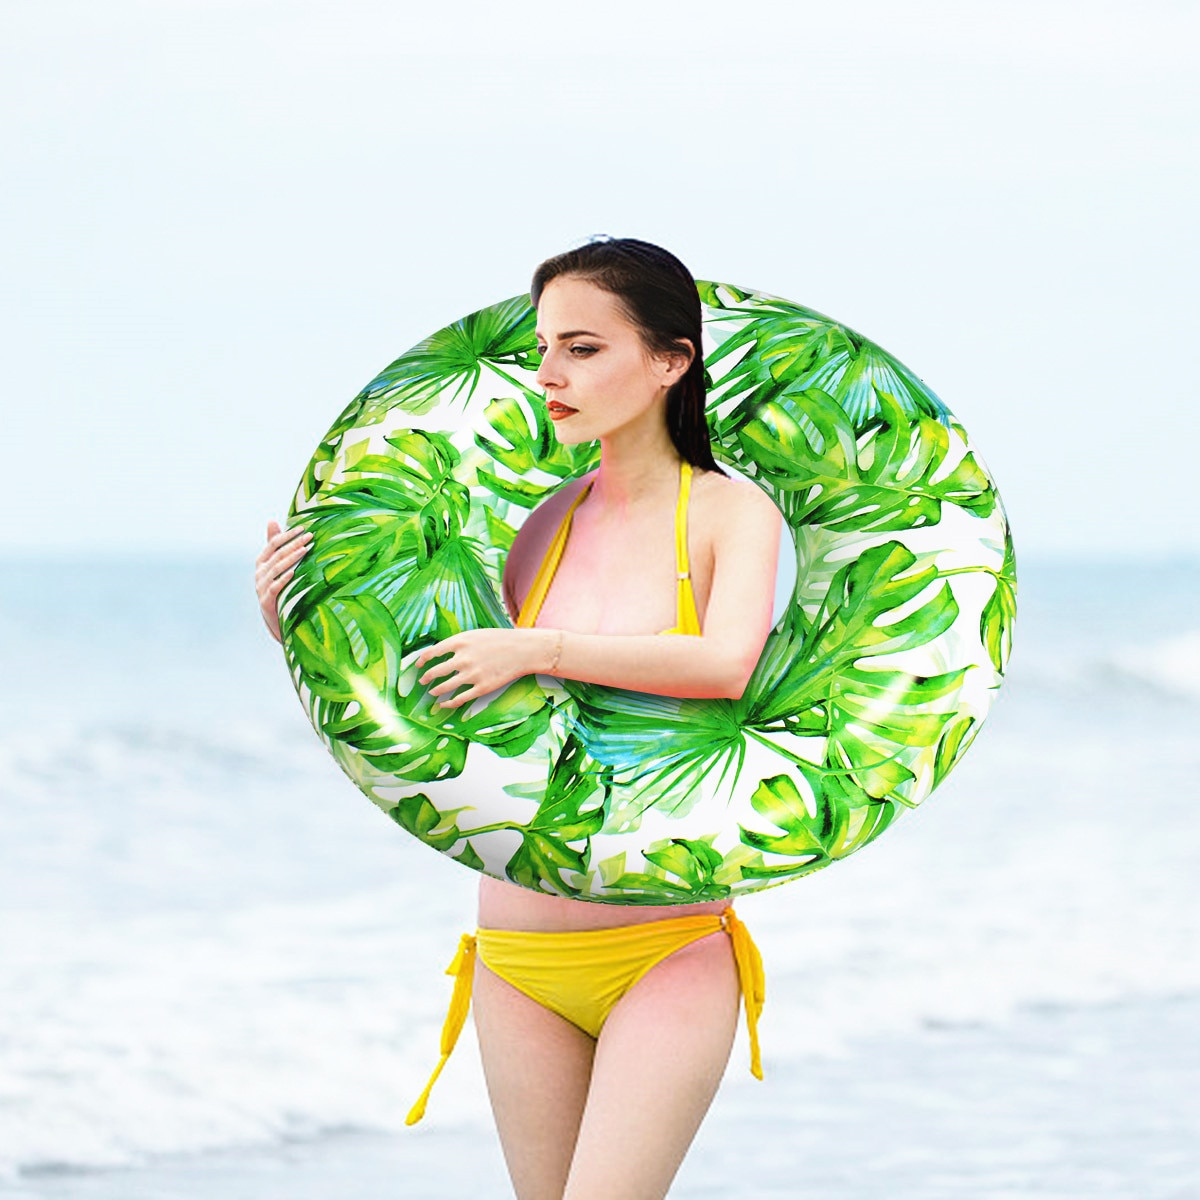 90cm Green Leaf Pool Float Inflatable Circle Swimming Ring for Kids Adult Floating Seat Summer Beach Party Pool Toys